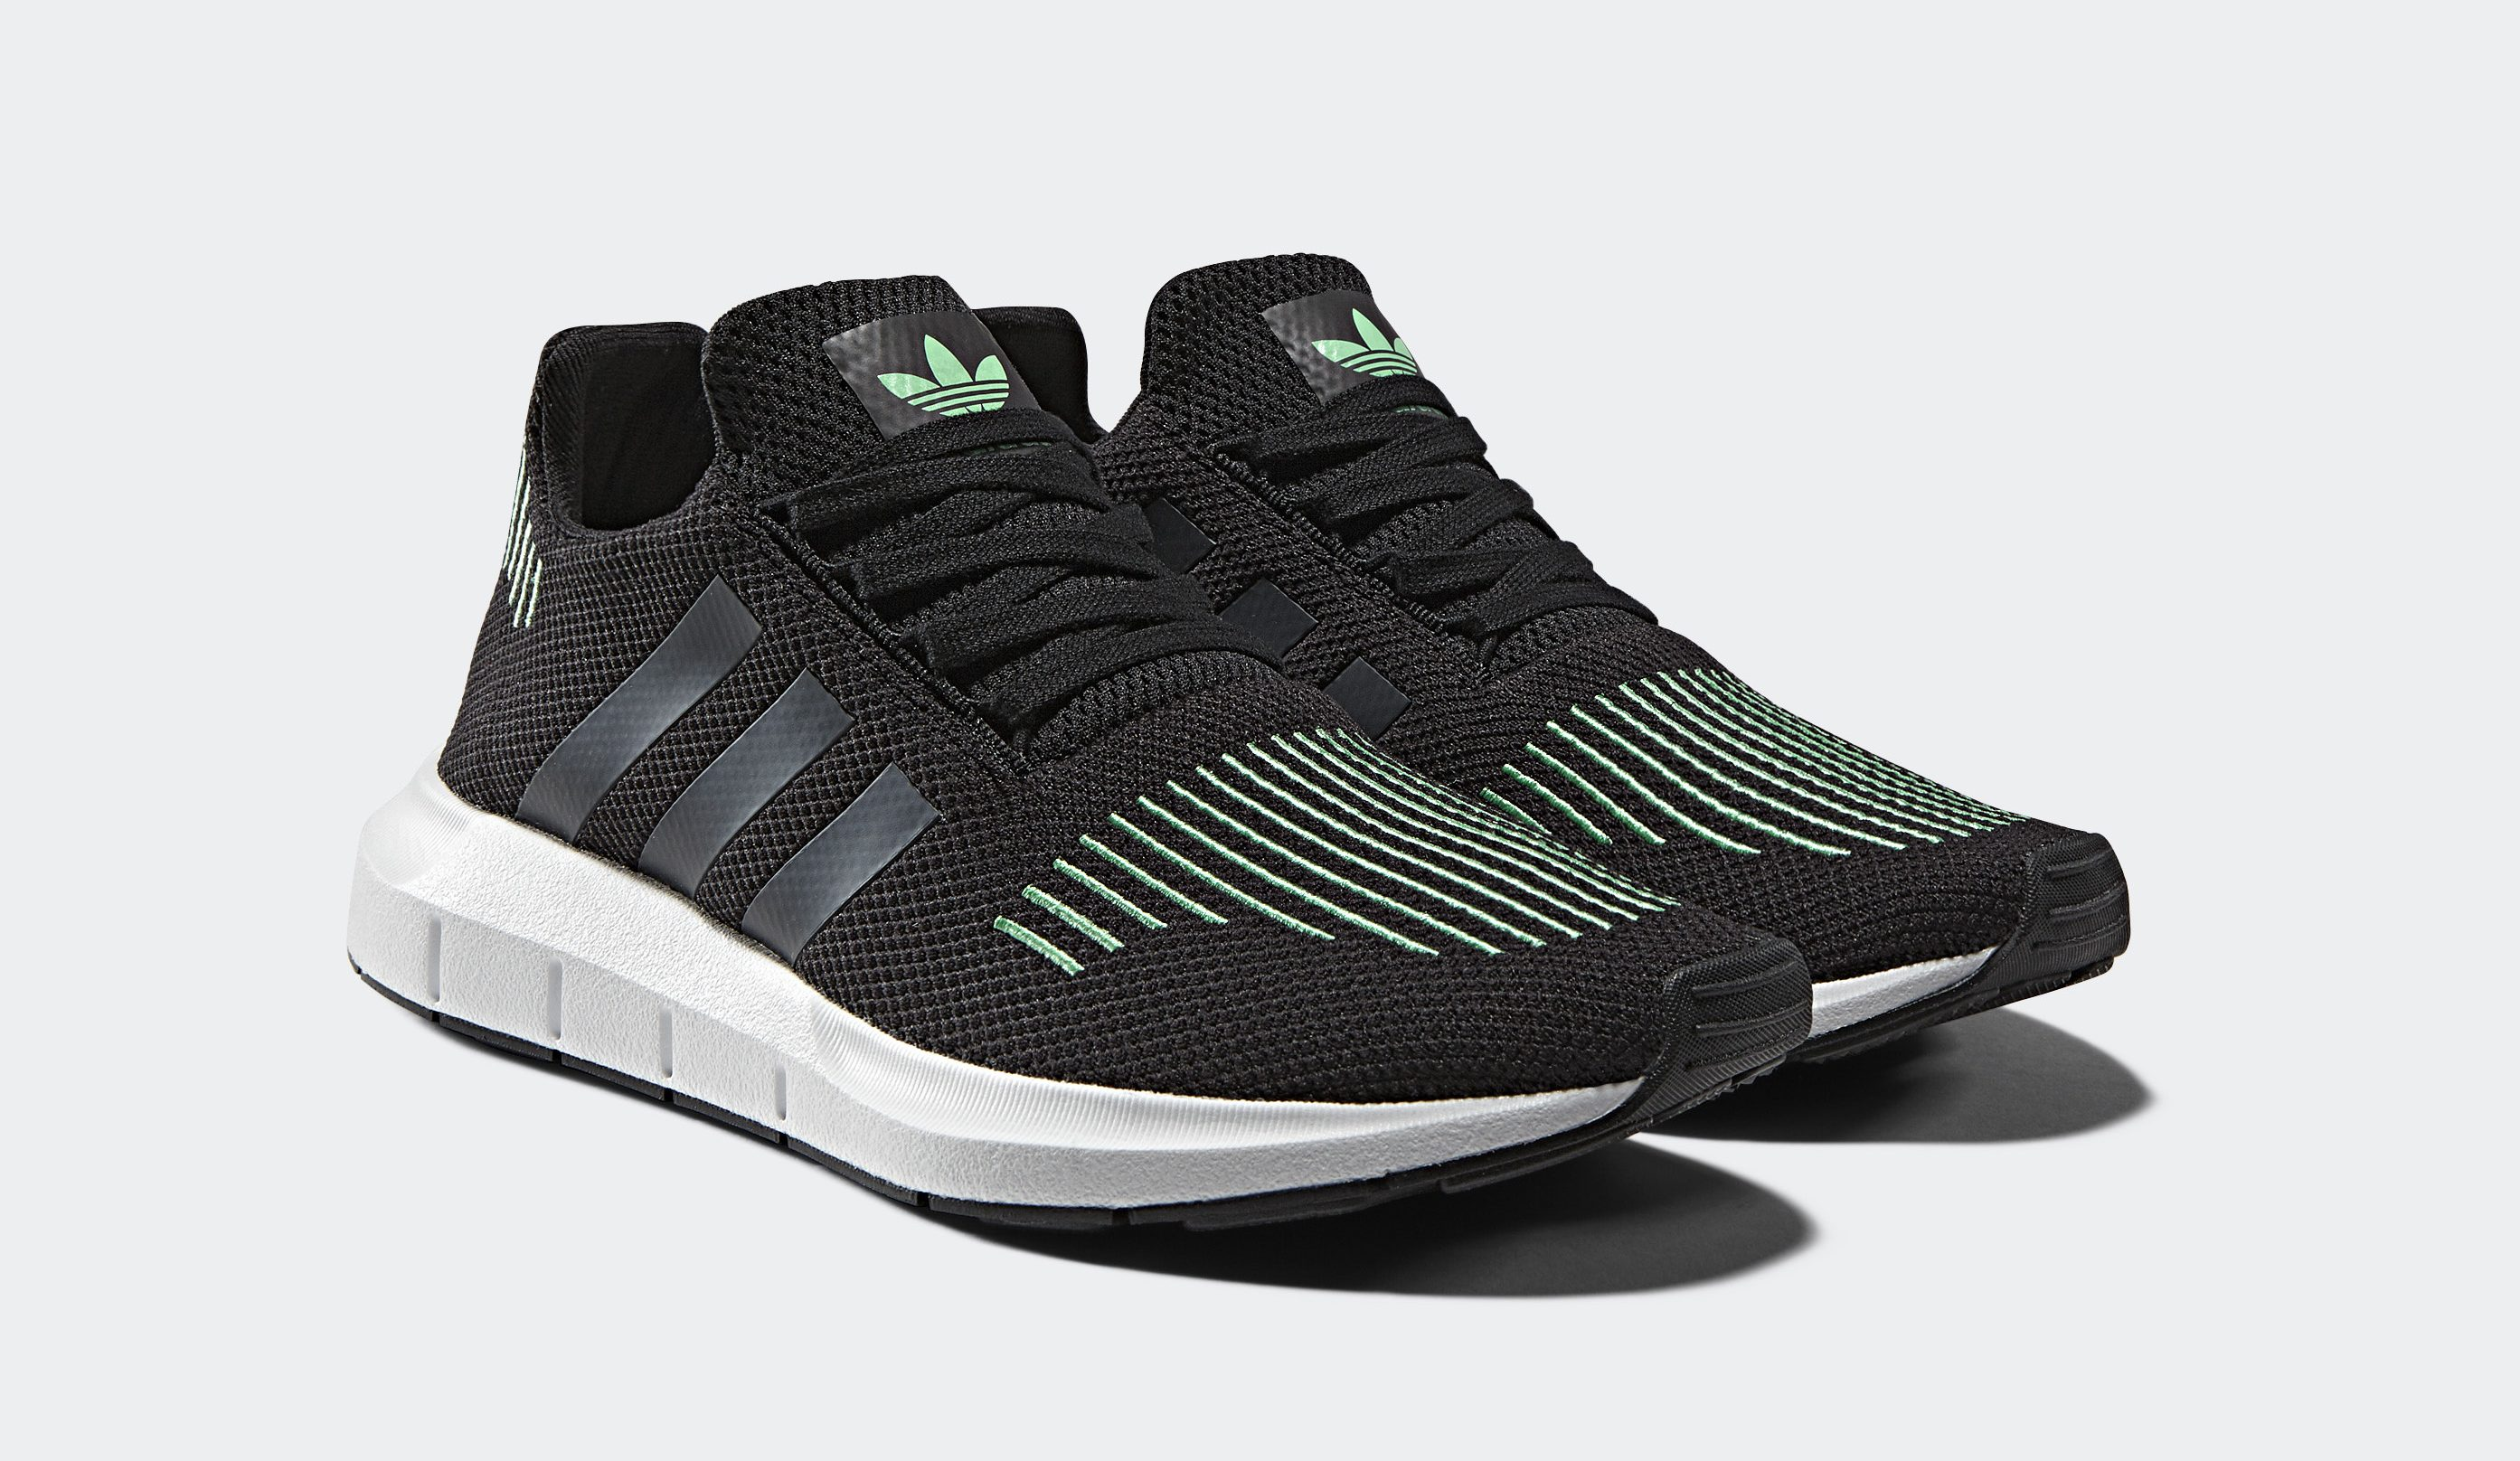 60b51c4d3fdf5b The New adidas Swift Run Releases in Singapore on July 27